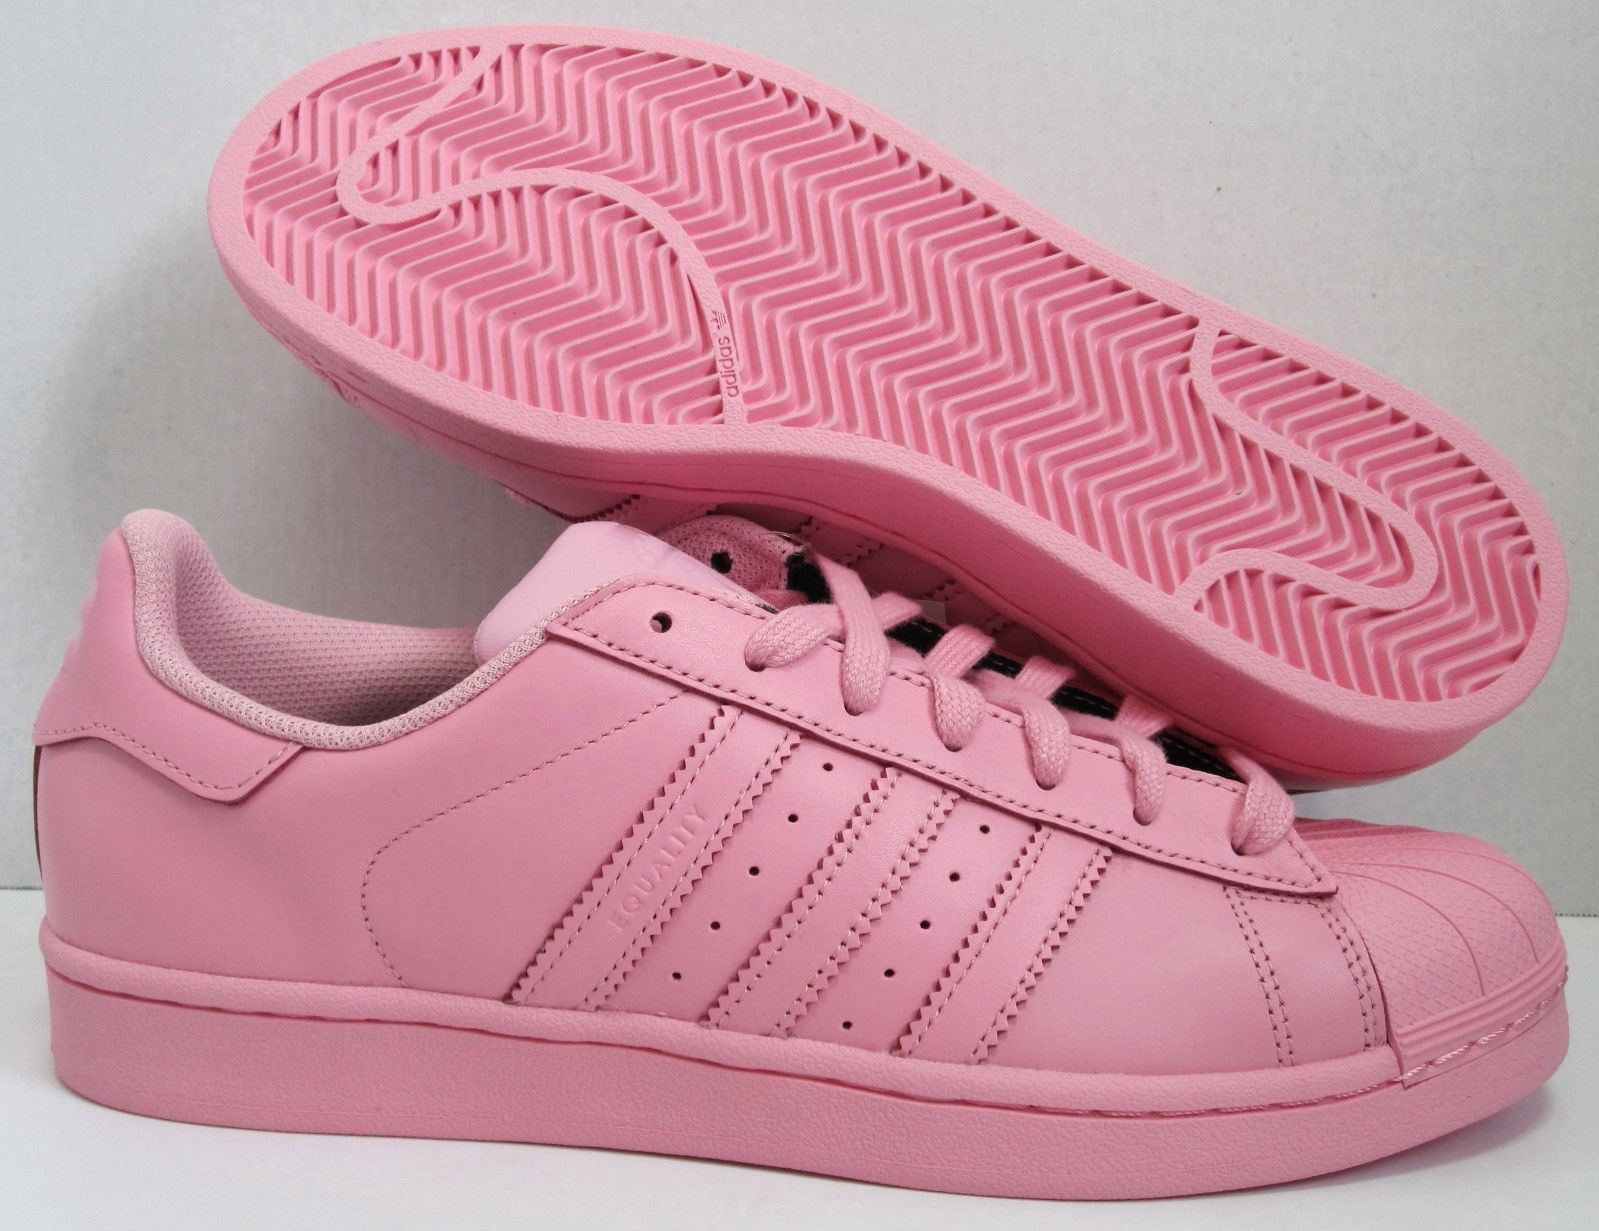 cac375dbd9039 ADIDAS PHARRELL WILLIAM SUPERCOLOR LIGHT PINK S41829  159